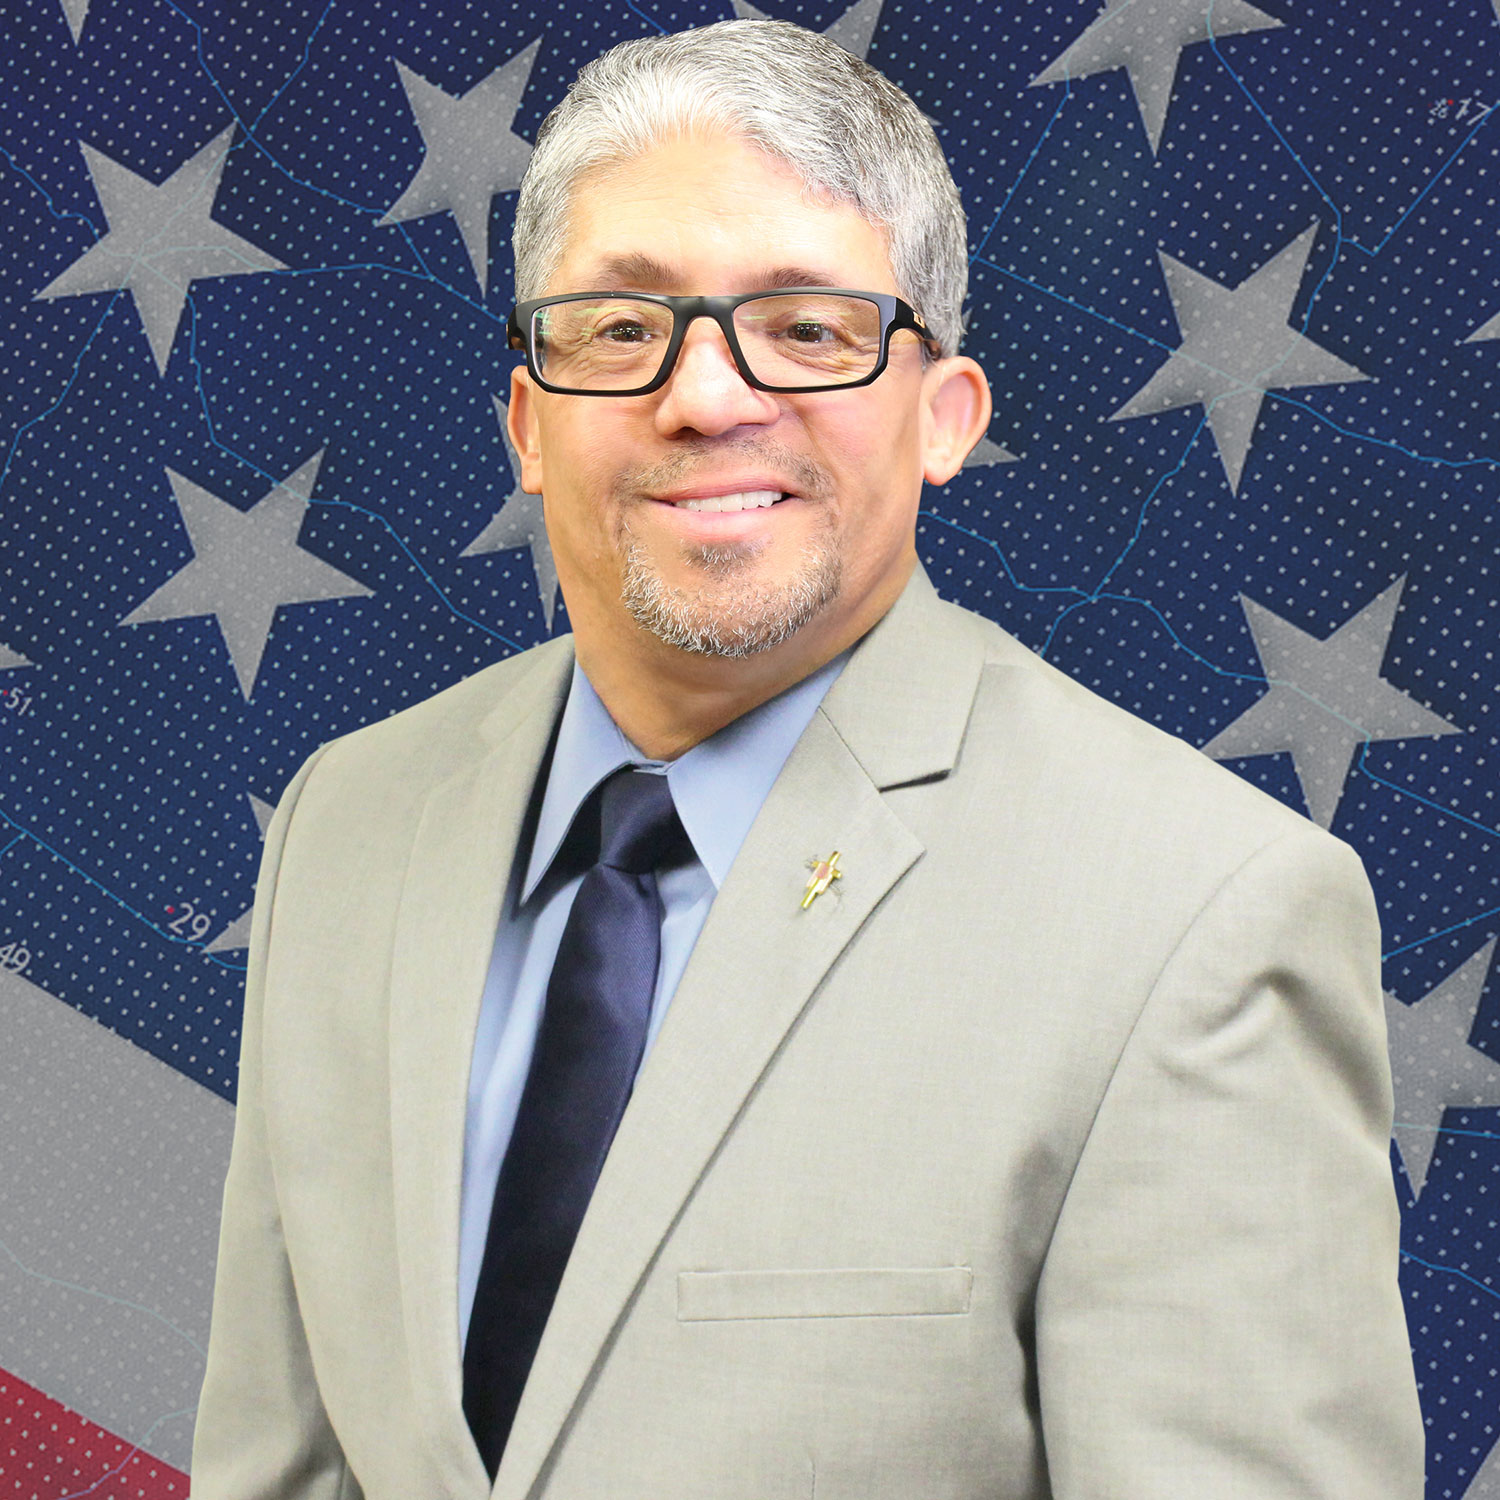 DEMOCRAT CANDIDATE FOR US CONGRESS, DR. NORMAN QUINTERO, SUES TEMECULA CITY MAYOR FOR IRRATIONAL PUBLIC POLICY AGAINST POOR AND HOMELESS CITIZENS